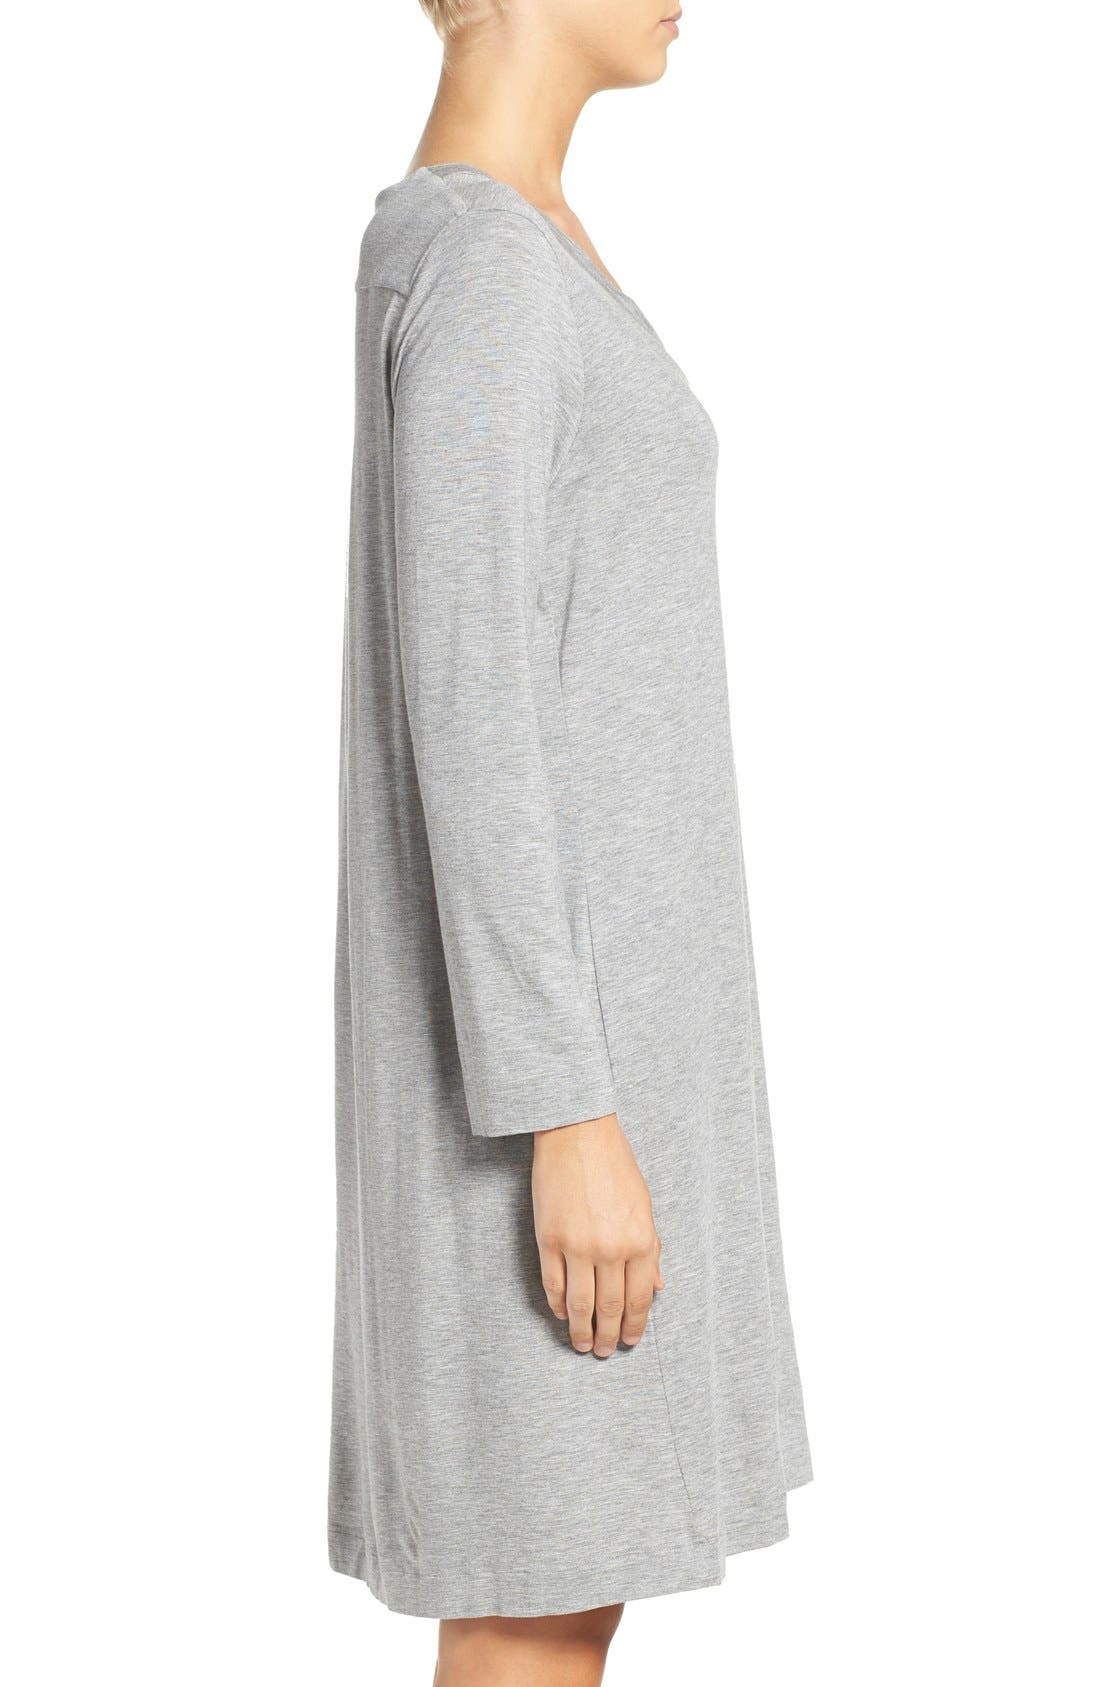 Long Sleeve Knit Nightgown,                             Alternate thumbnail 3, color,                             025